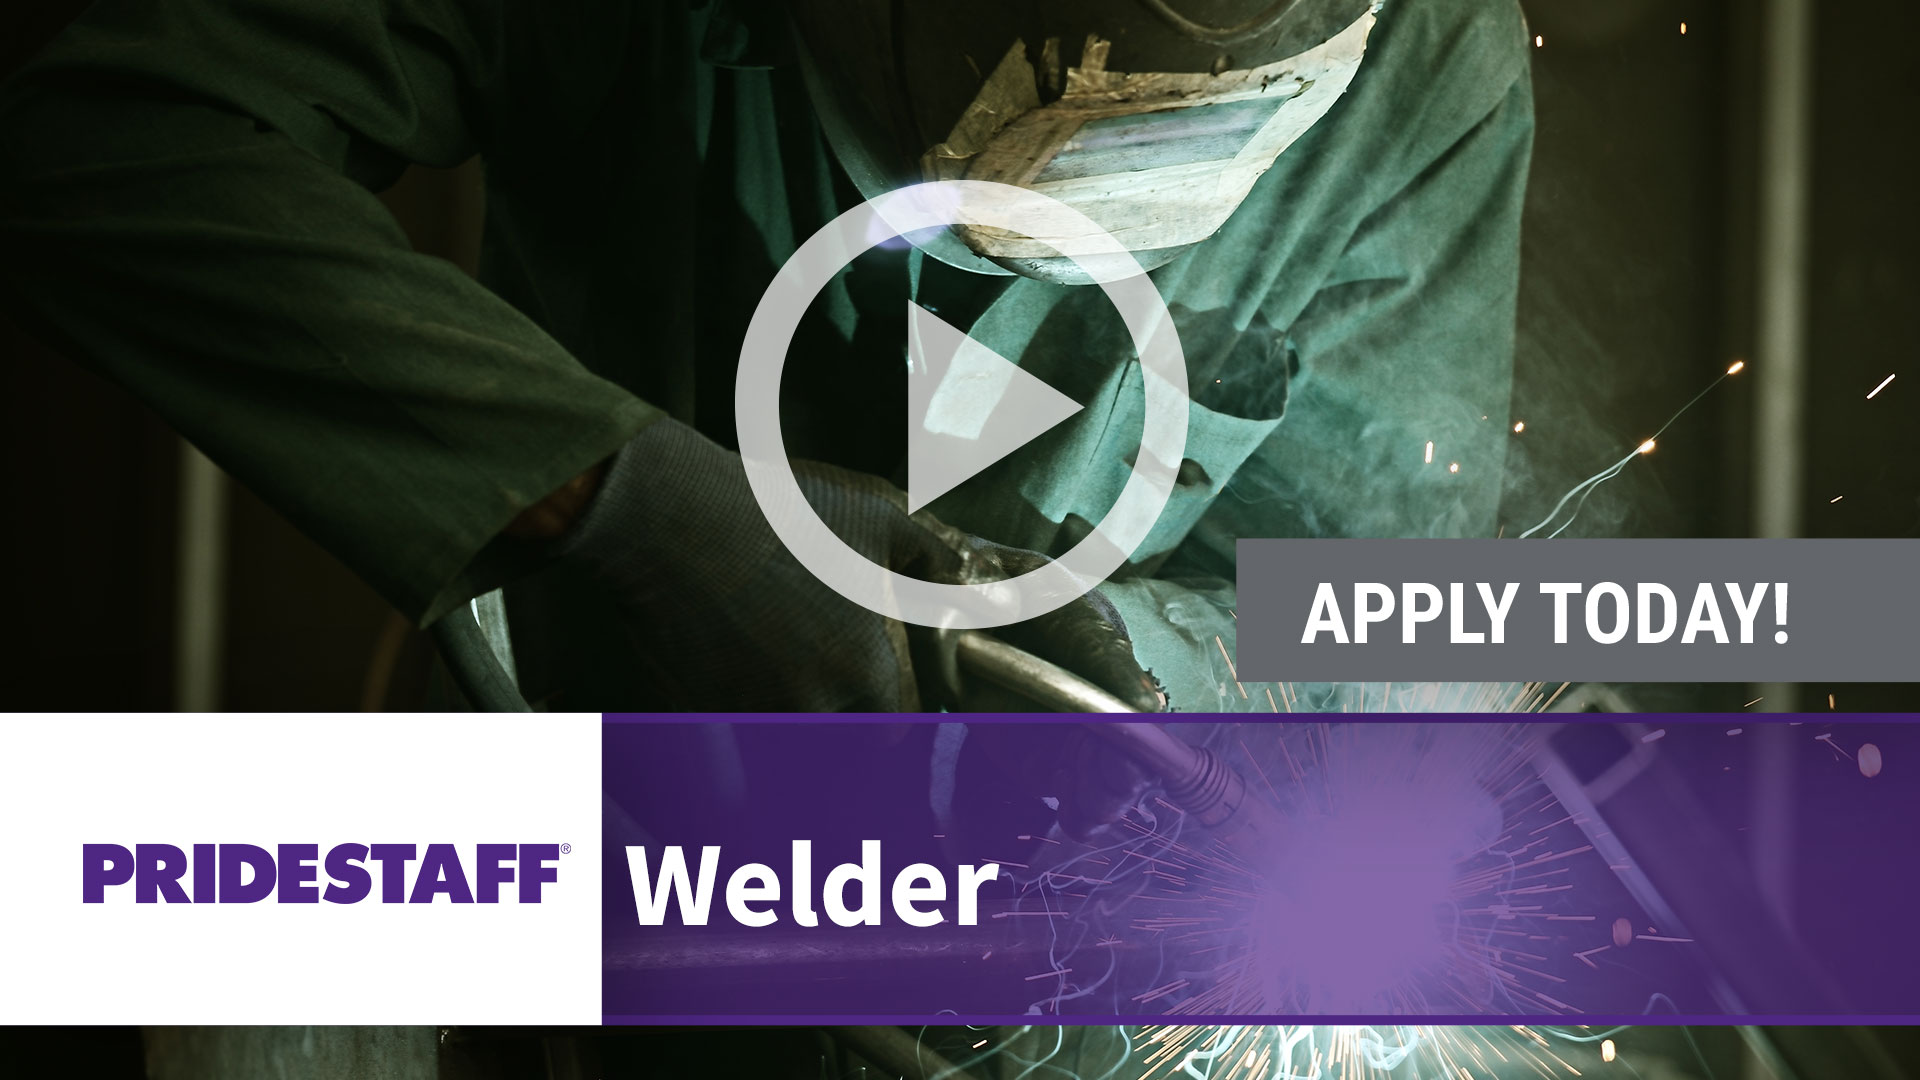 Watch our careers video for available job opening Welders in TBD, TBD